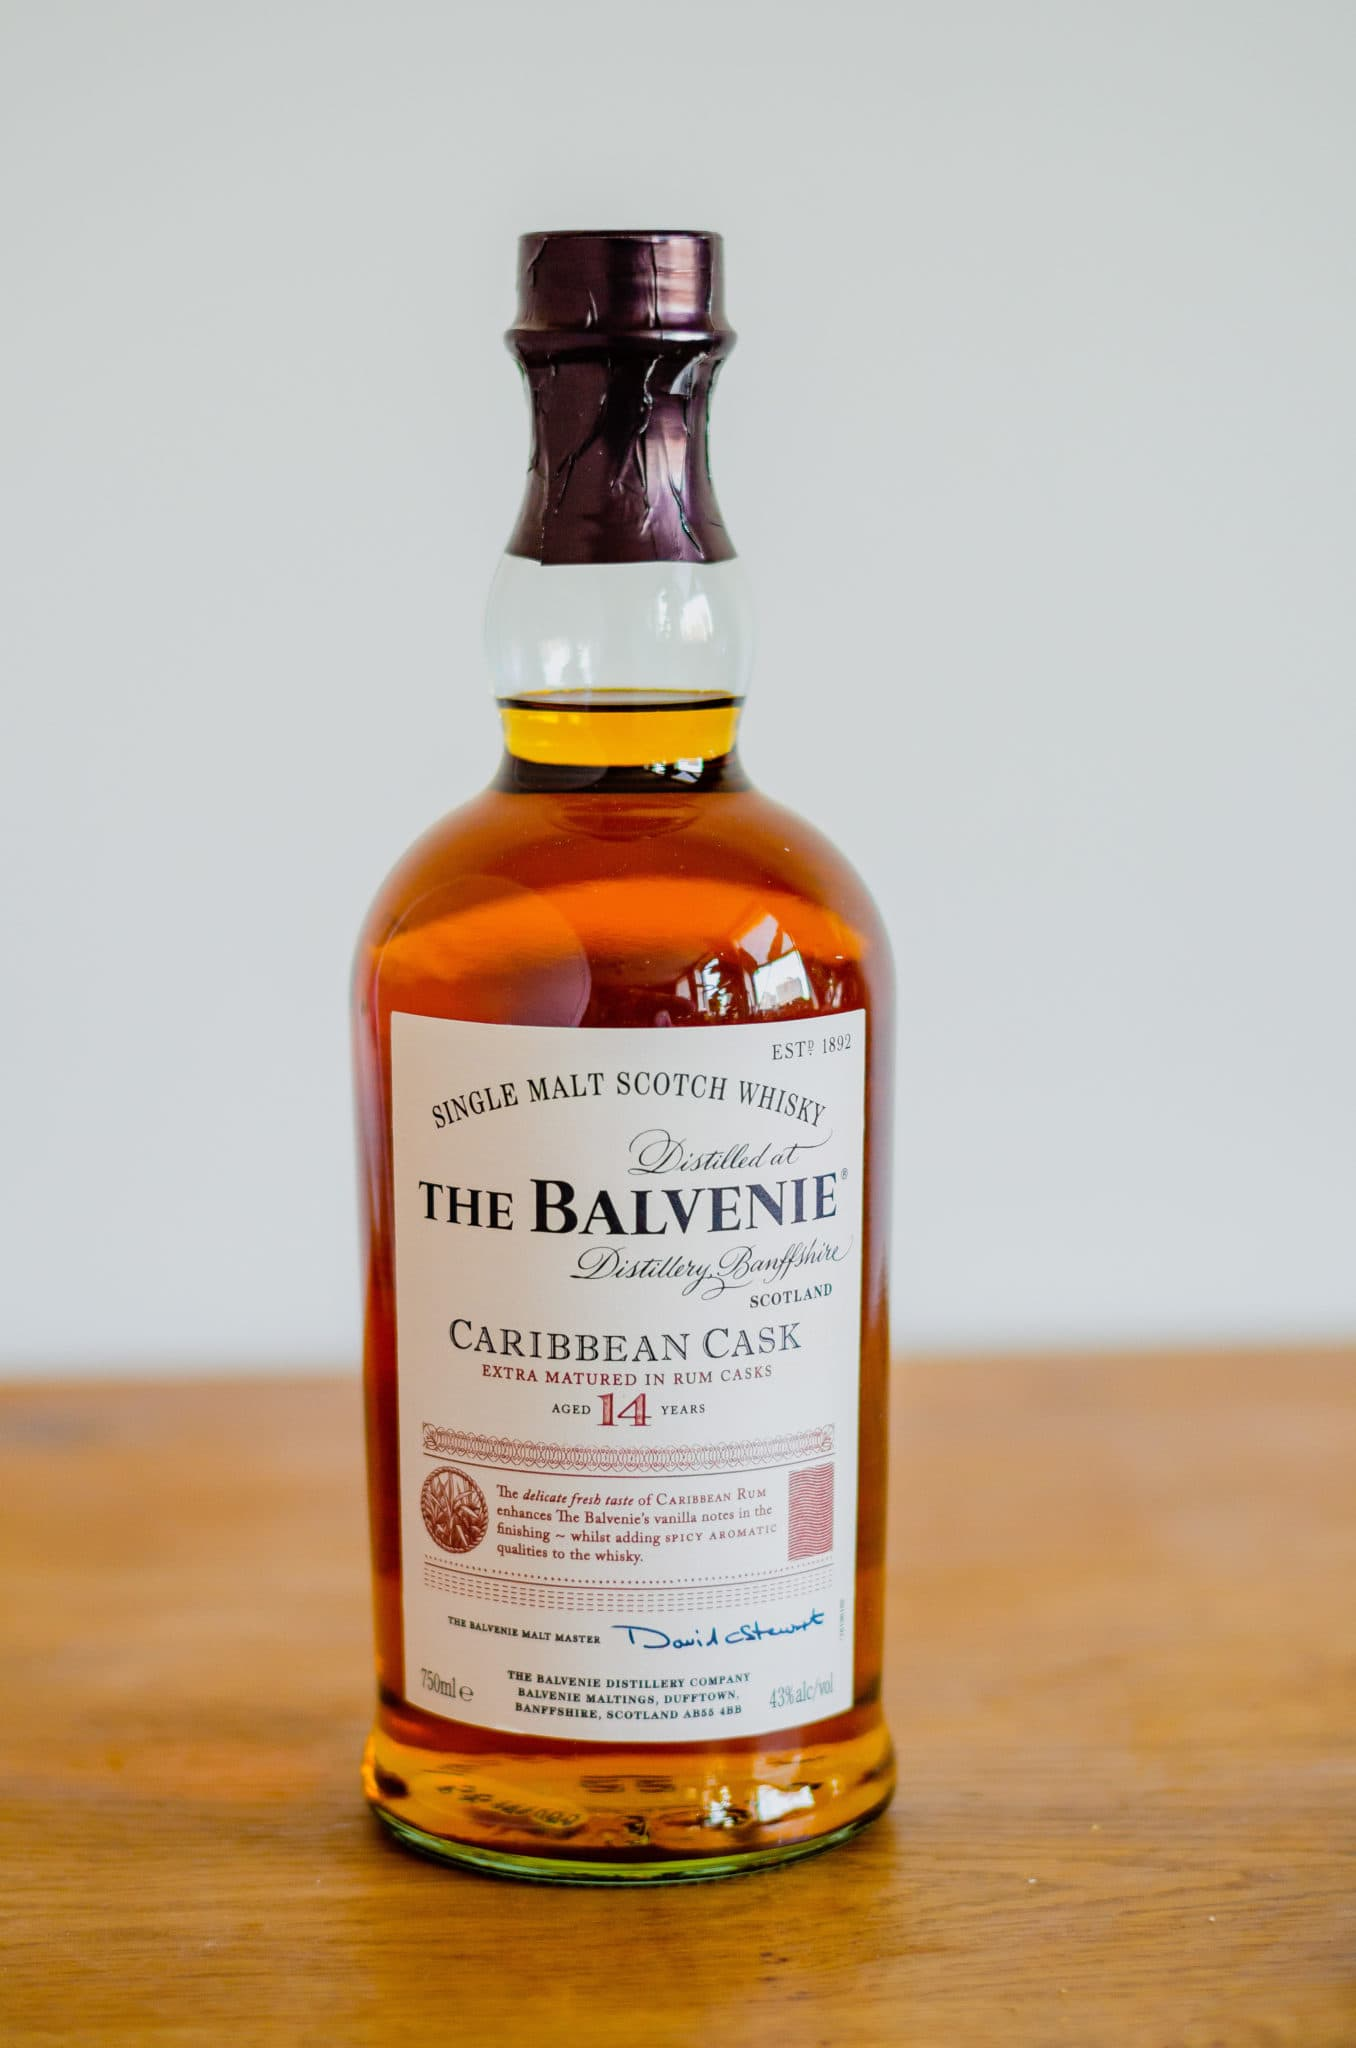 The Balvenie Caribbean Cask Single Malt Scotch